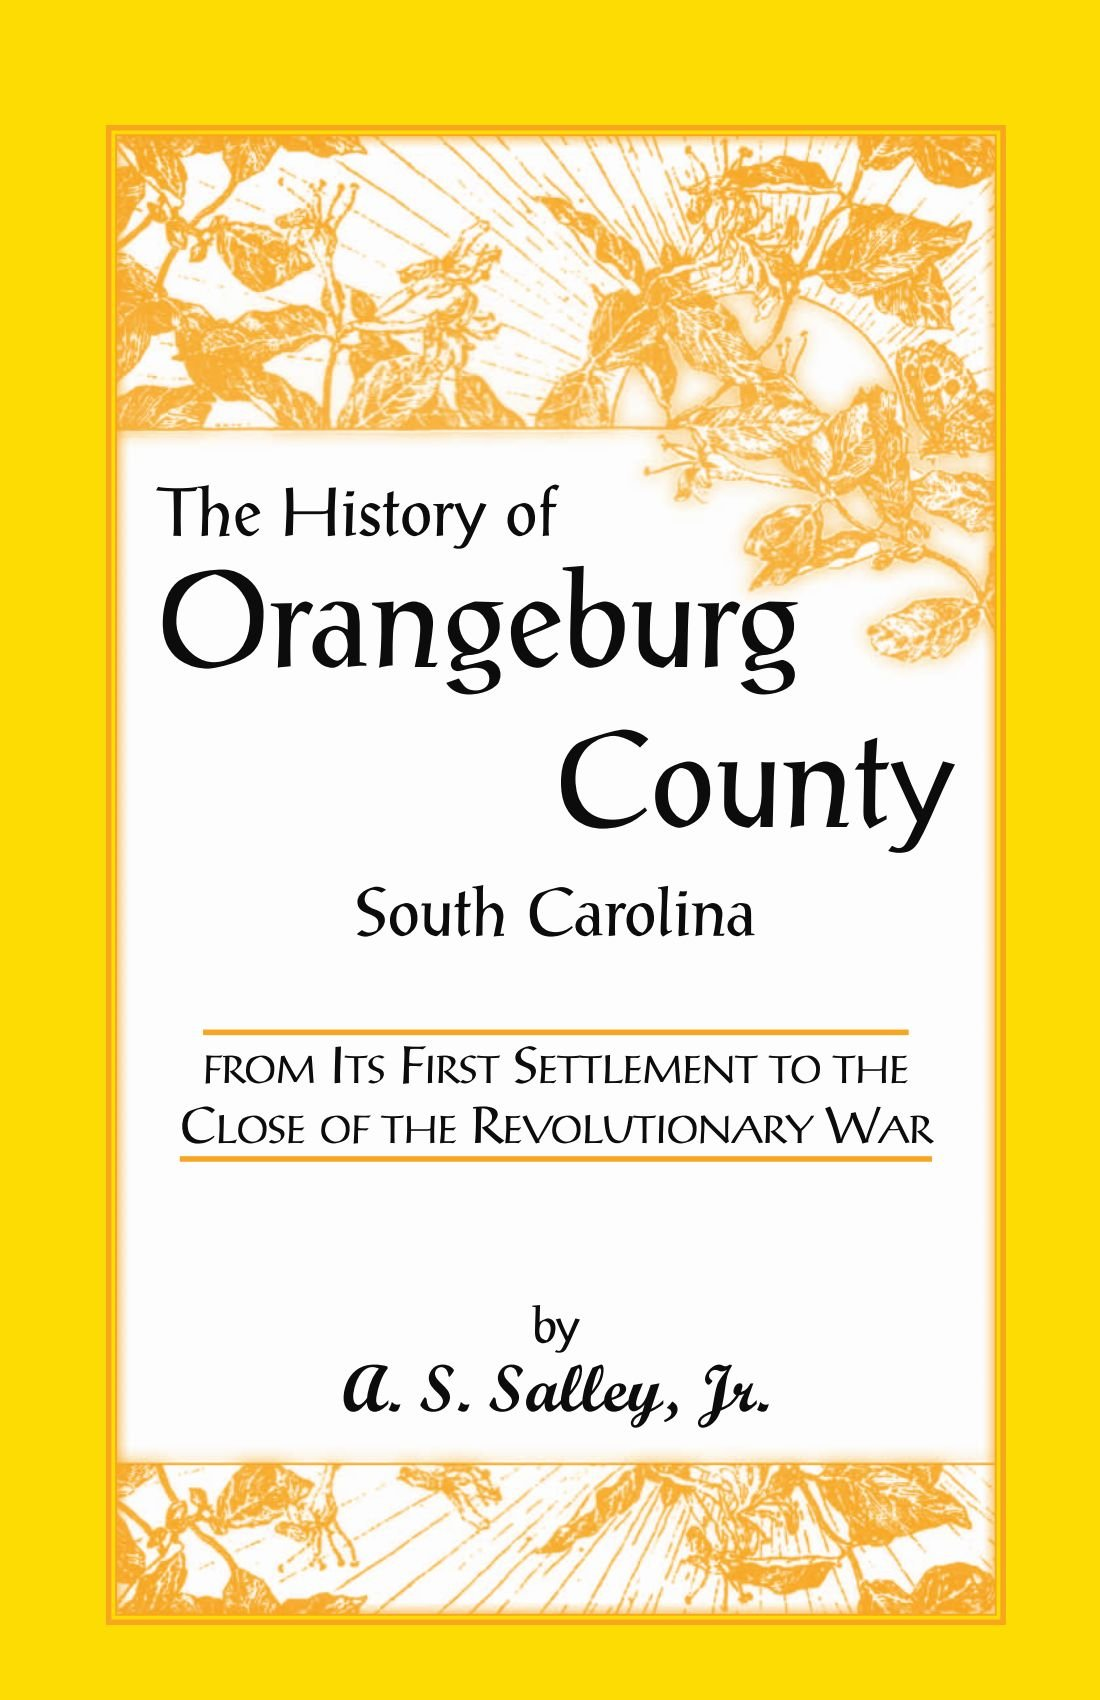 Download The History of Orangeburg County, South Carolina, From its First Settlement to the Close of the Revolutionary War (Heritage Classic) PDF